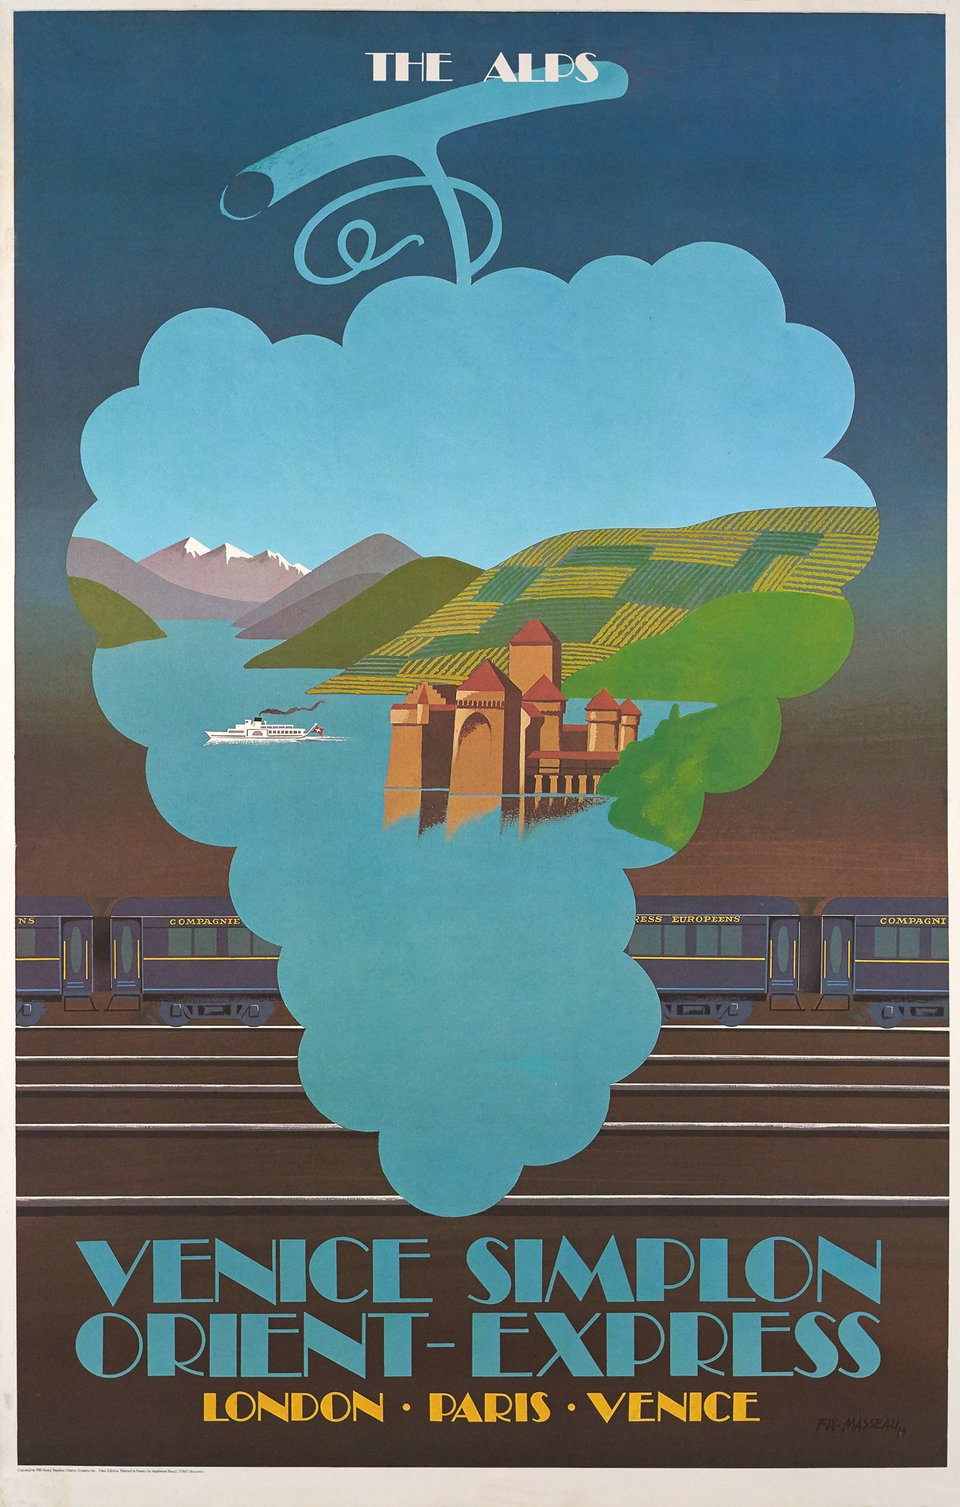 Venice Simplon Orient-Express, London Paris Venice, The Alps – Affiche ancienne – Pierre FIX-MASSEAU – 1981